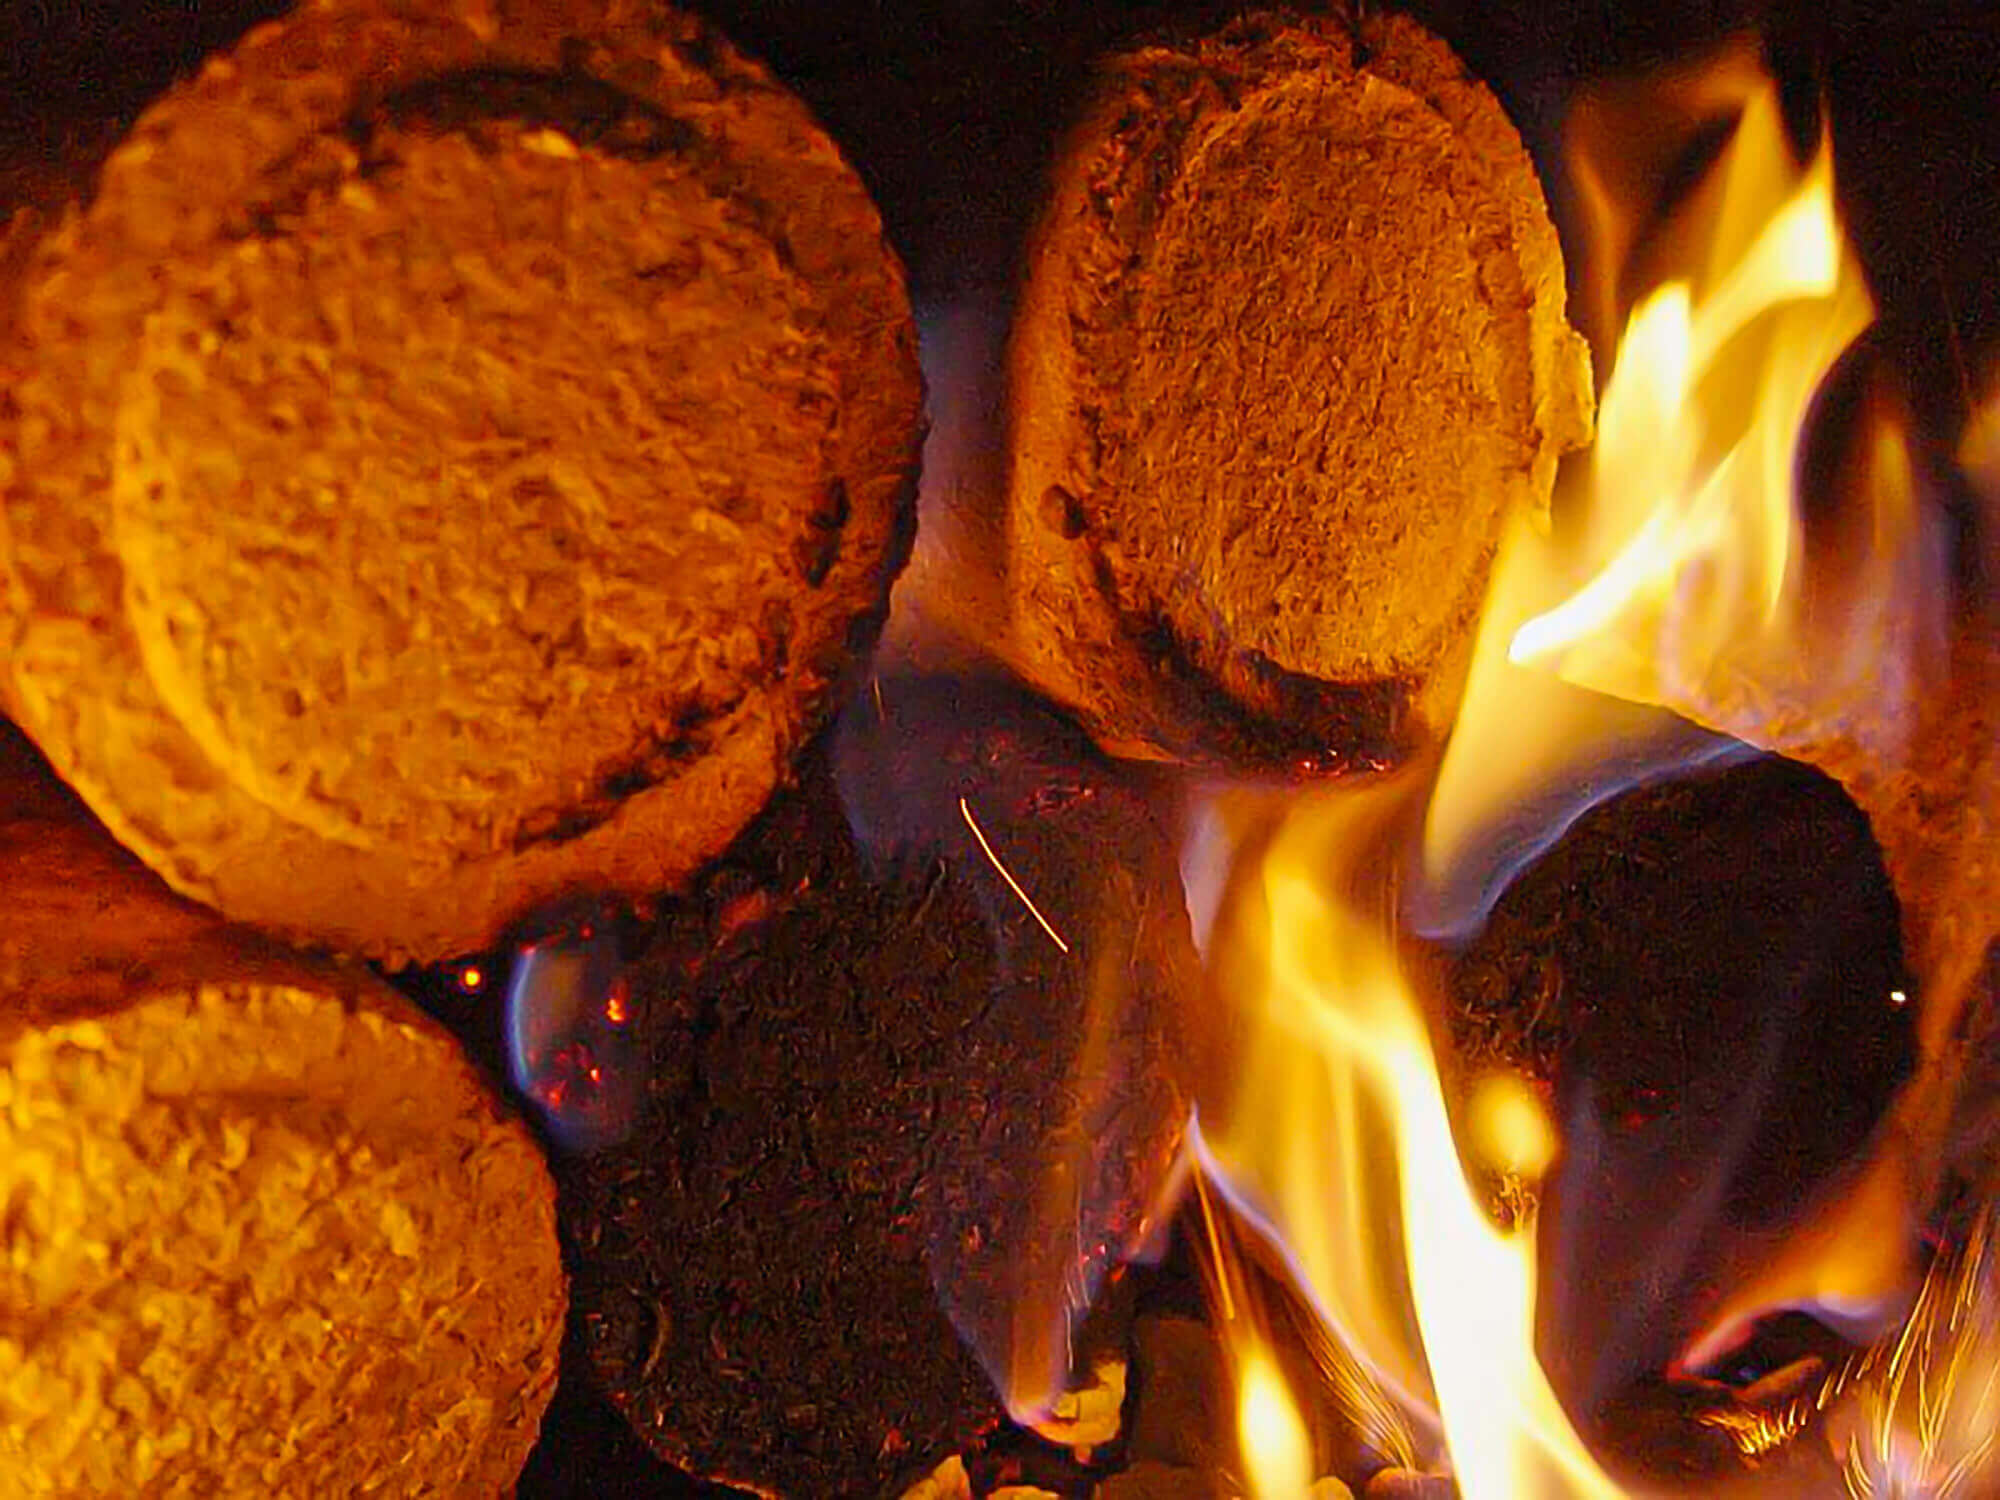 Burning round wood briquettes in a wood burning oven